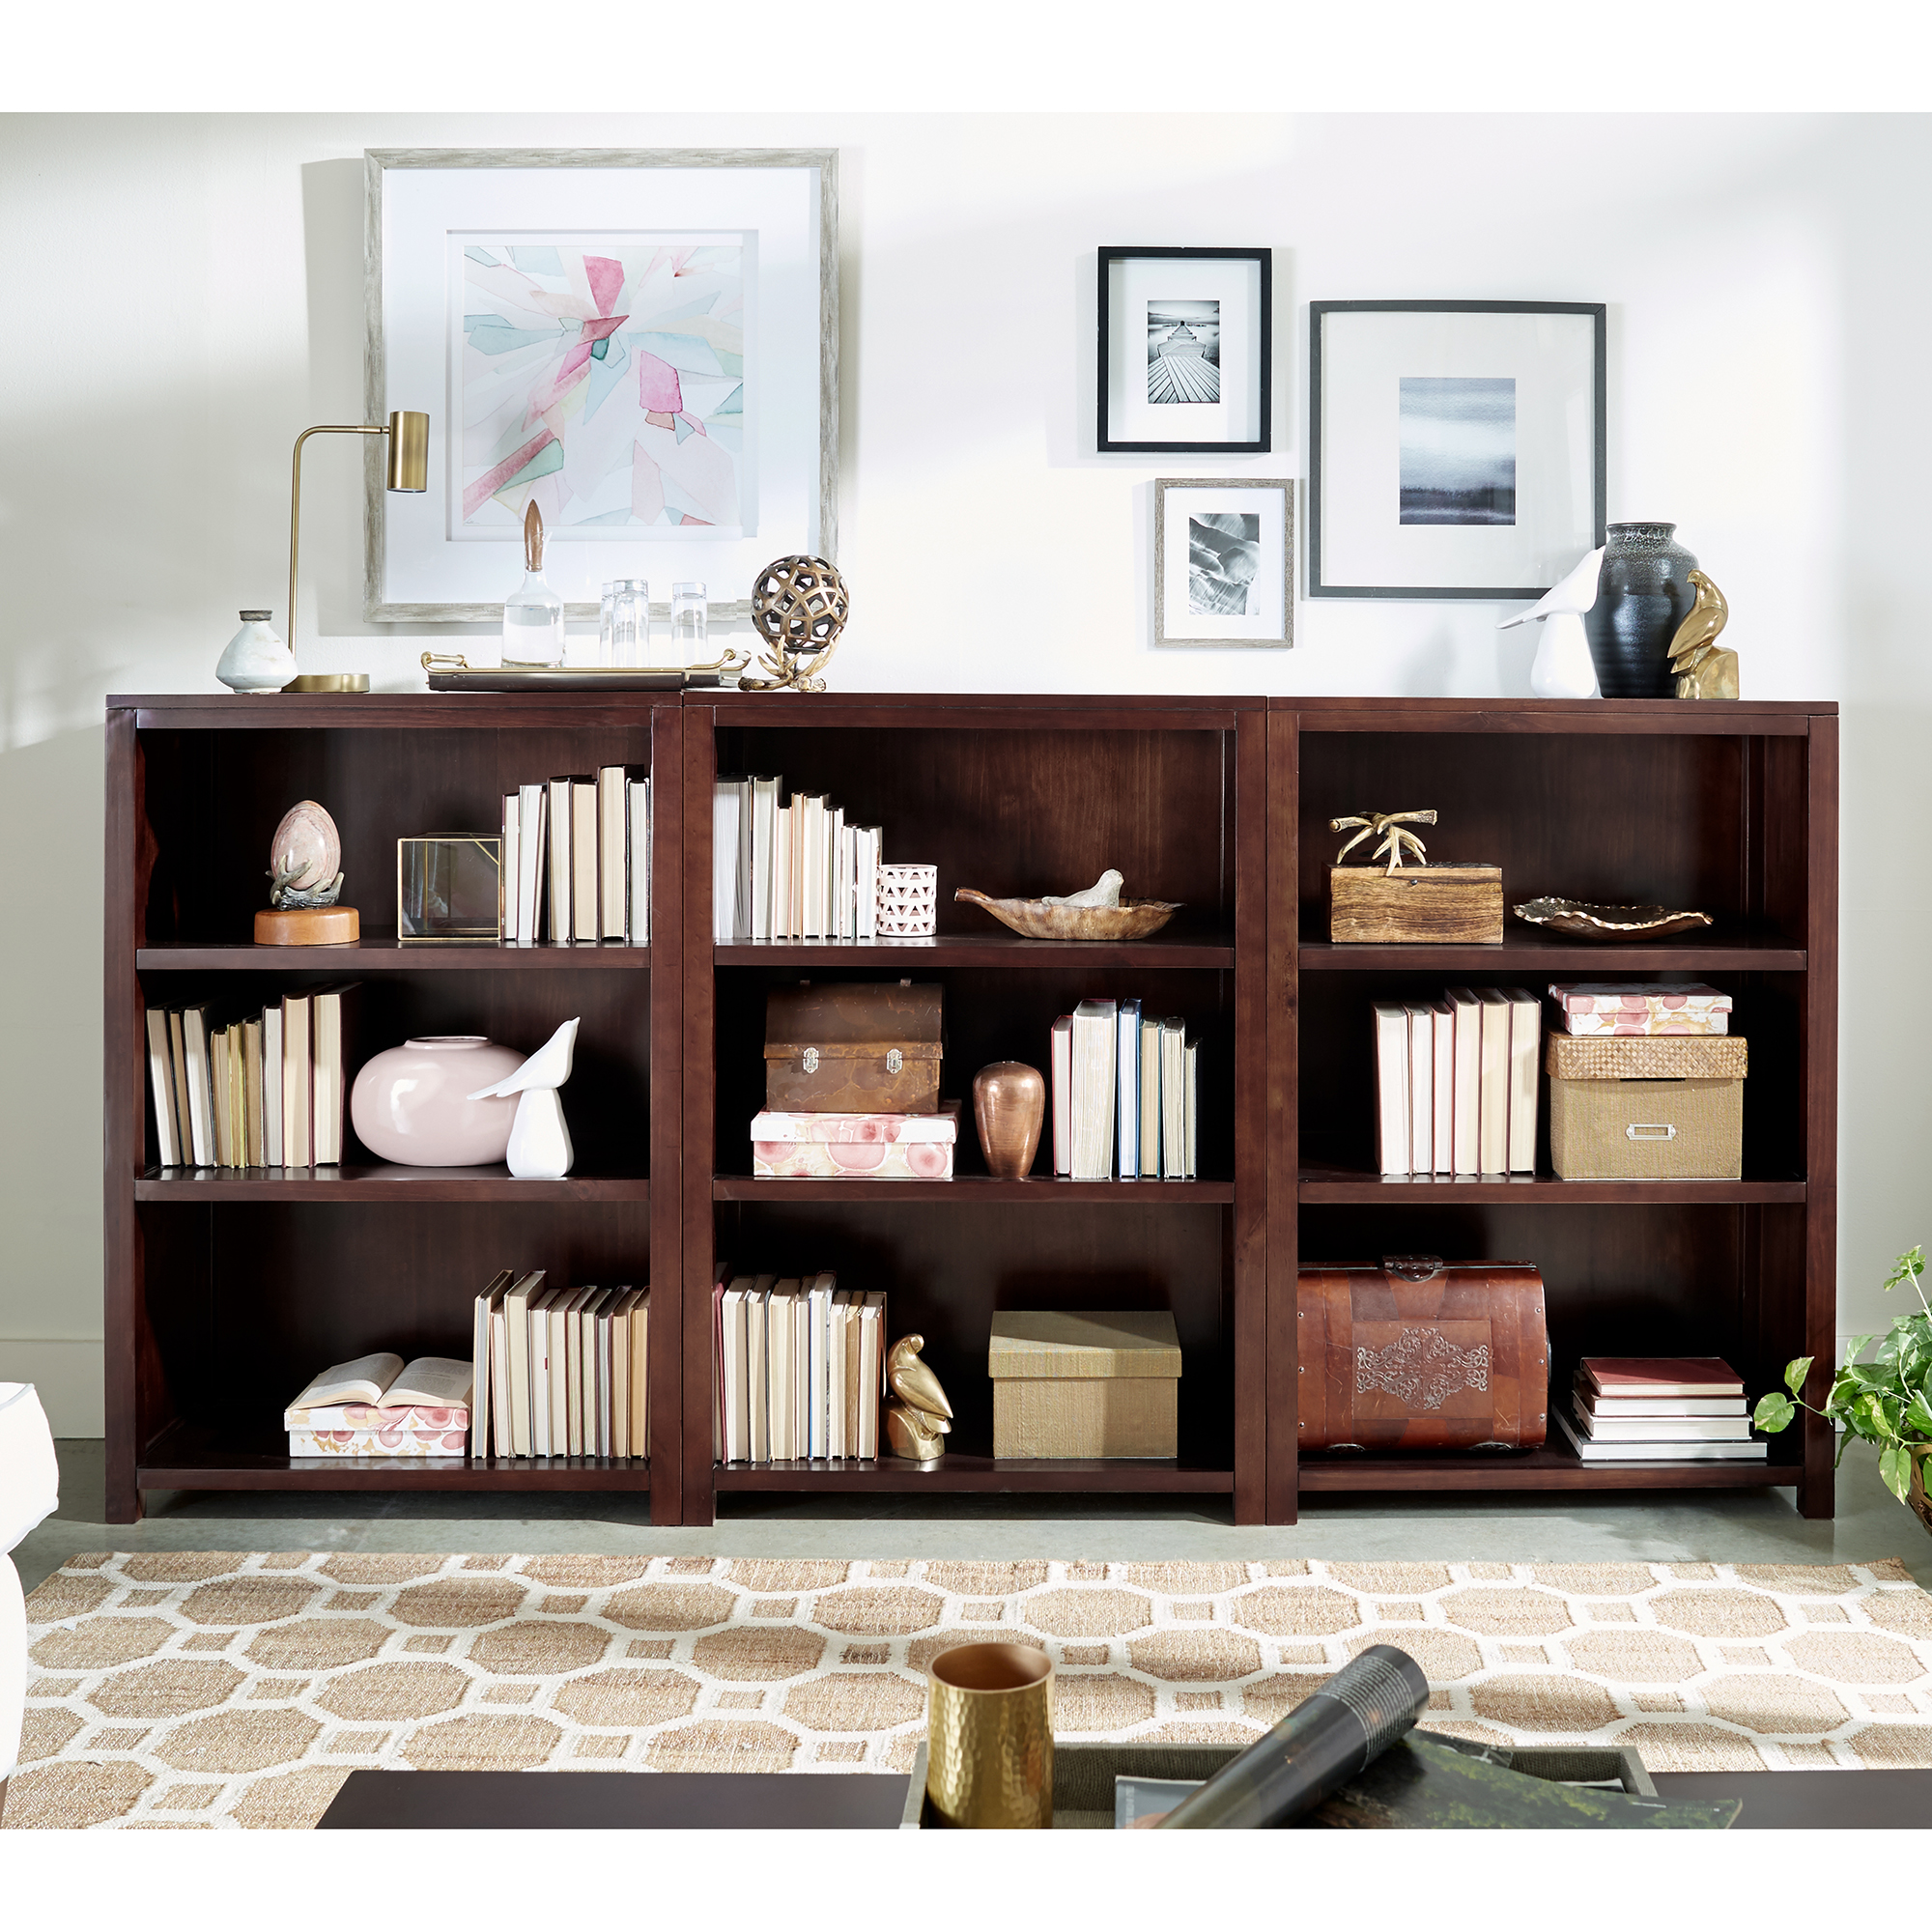 3 Piece 47 Bookshelf Set